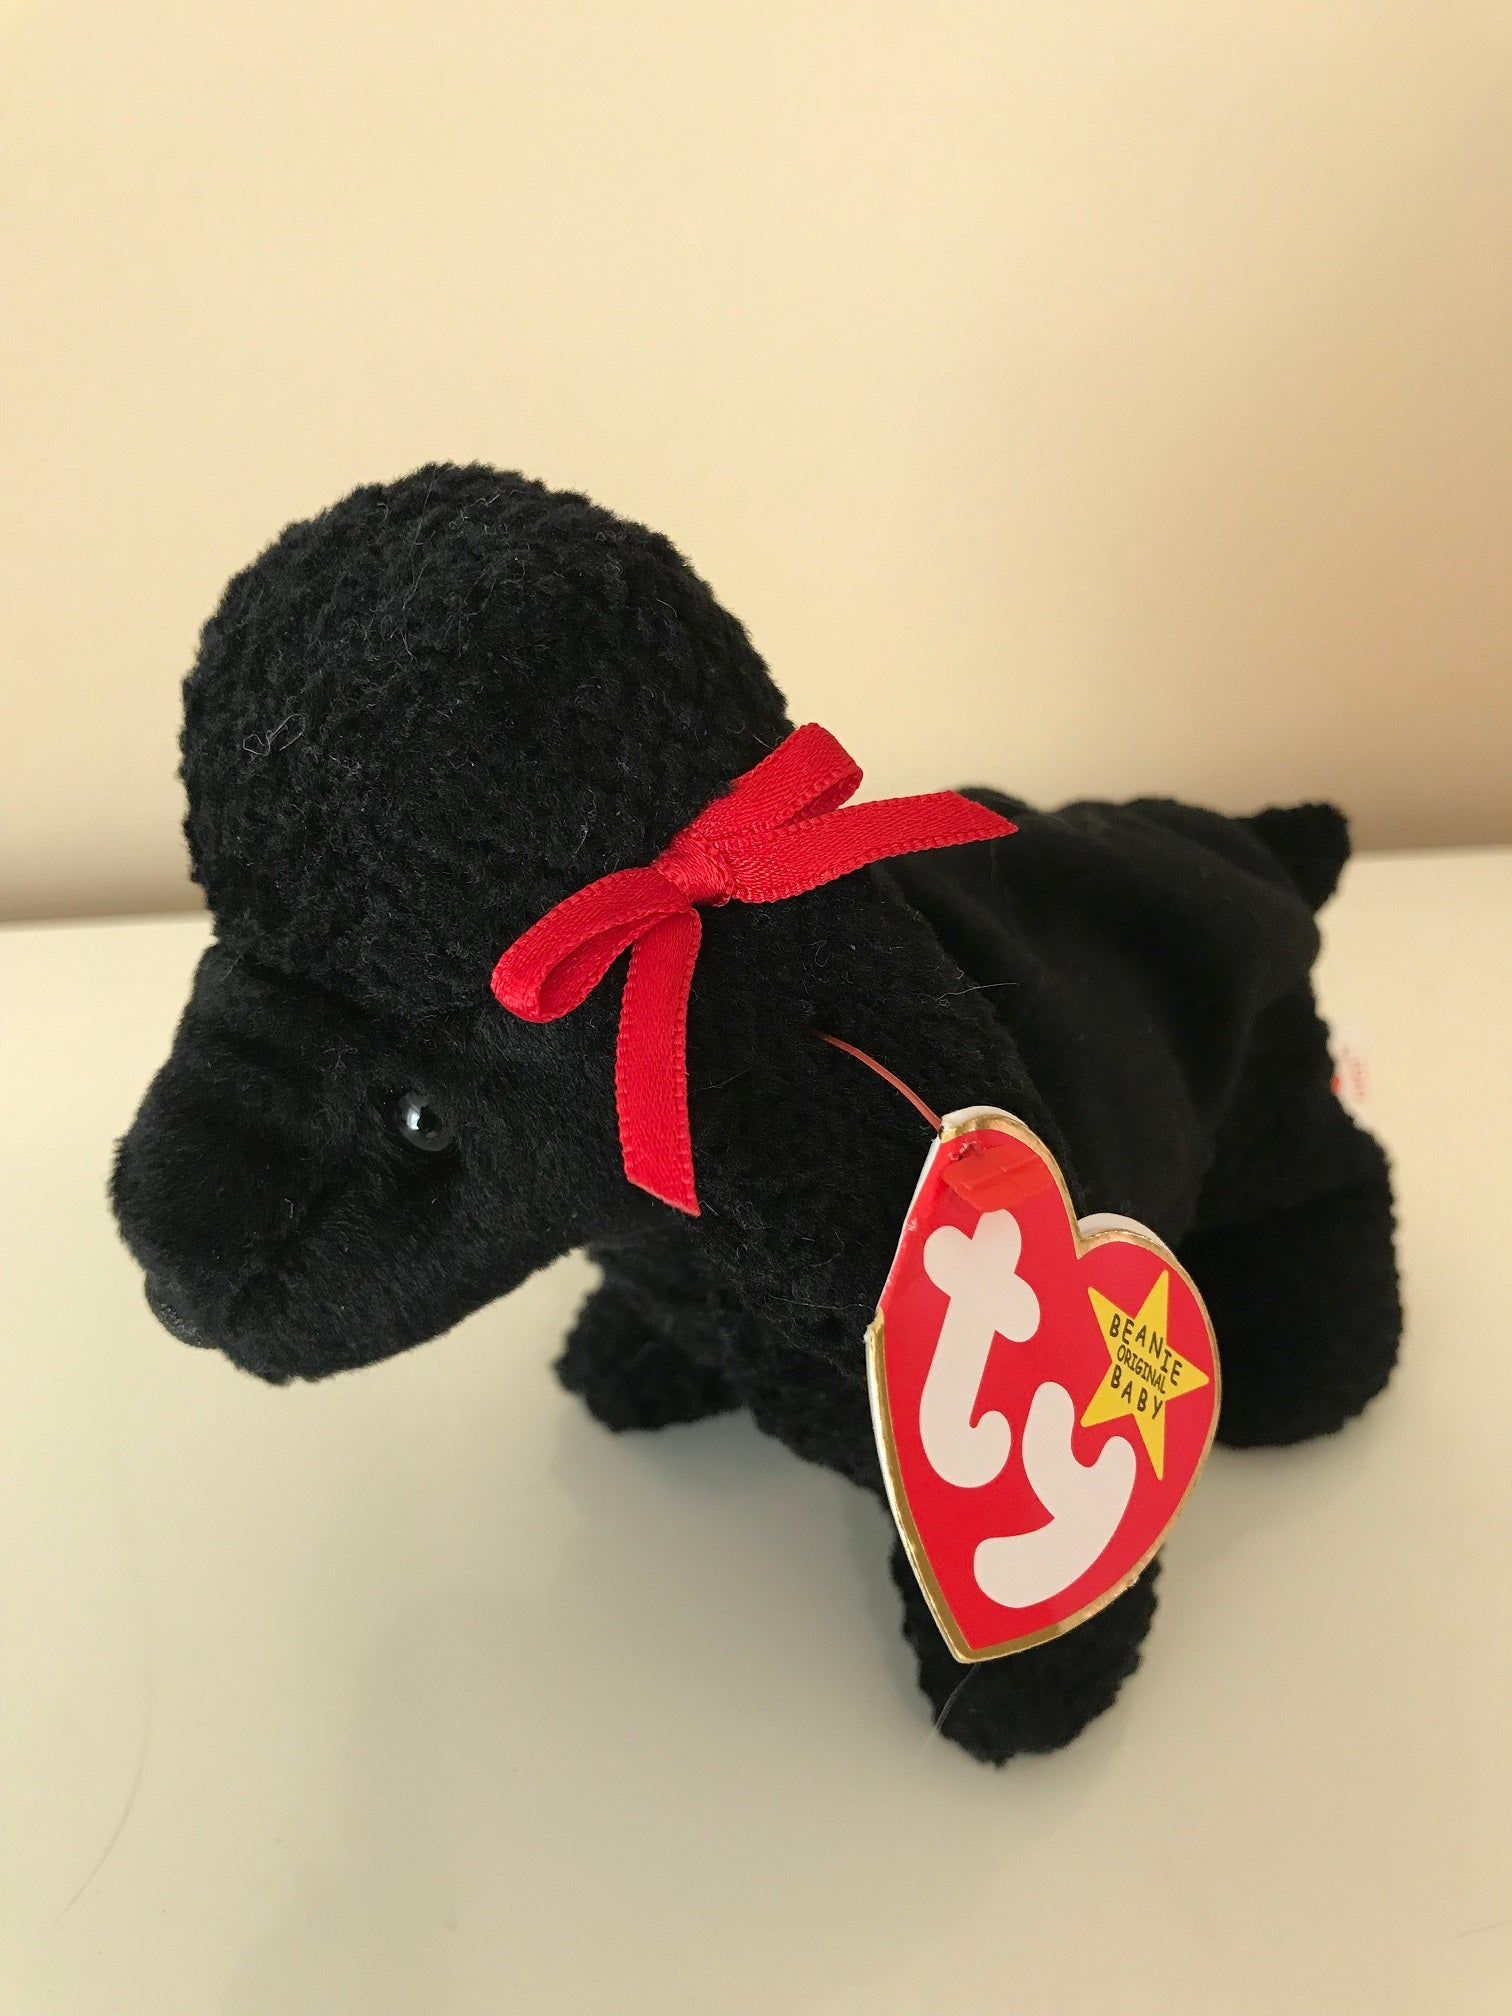 ... TY Beanie Babies Gigi The Poodle Dog Stuffed Animal Plush Toy Black 7